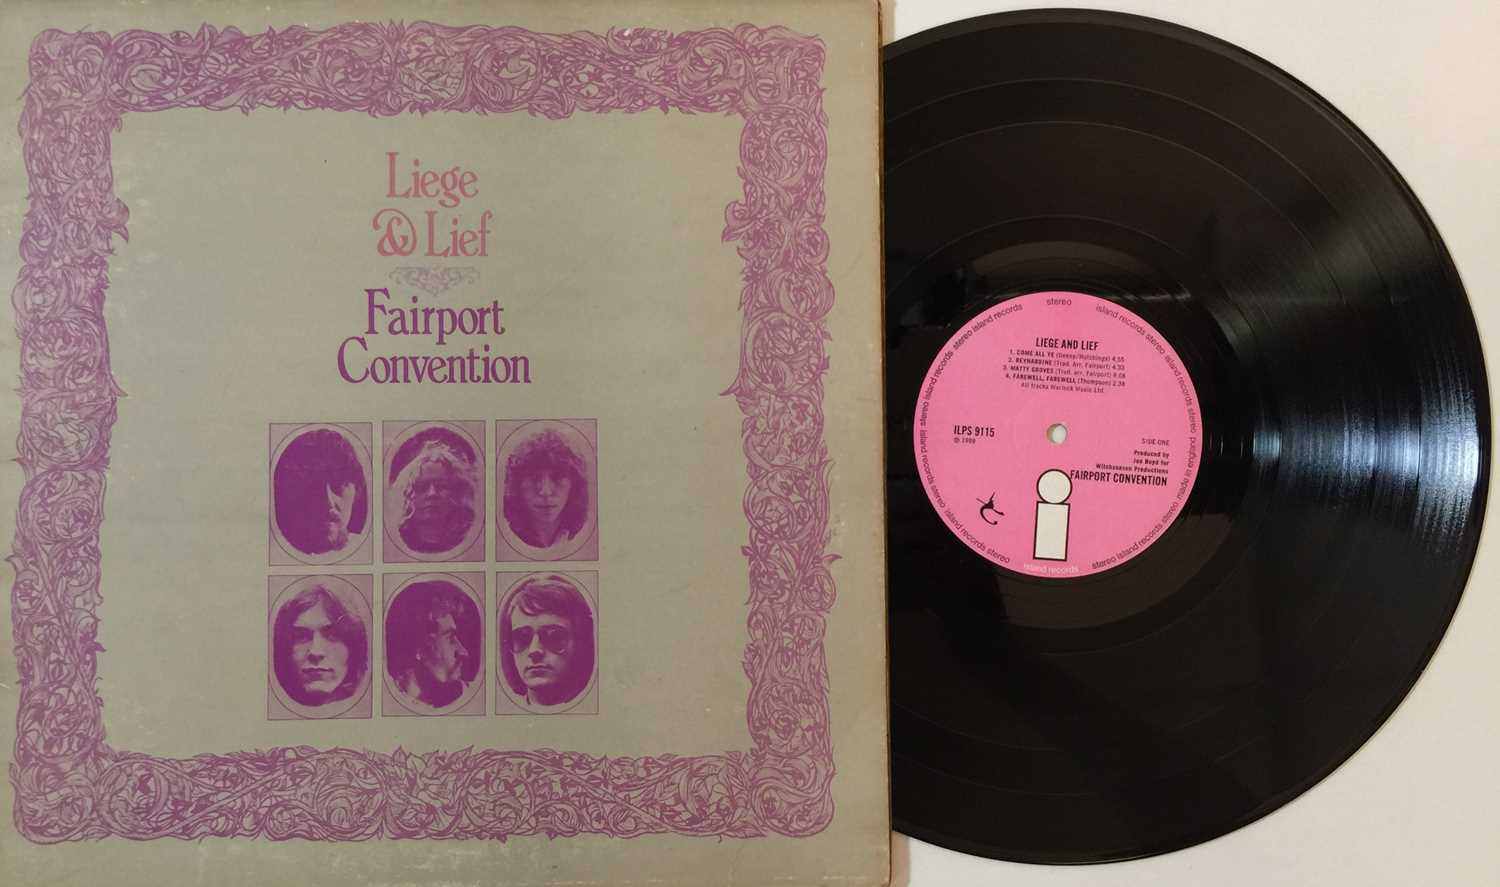 FAIRPORT CONVENTION AND RELATED - LPs - Image 4 of 4